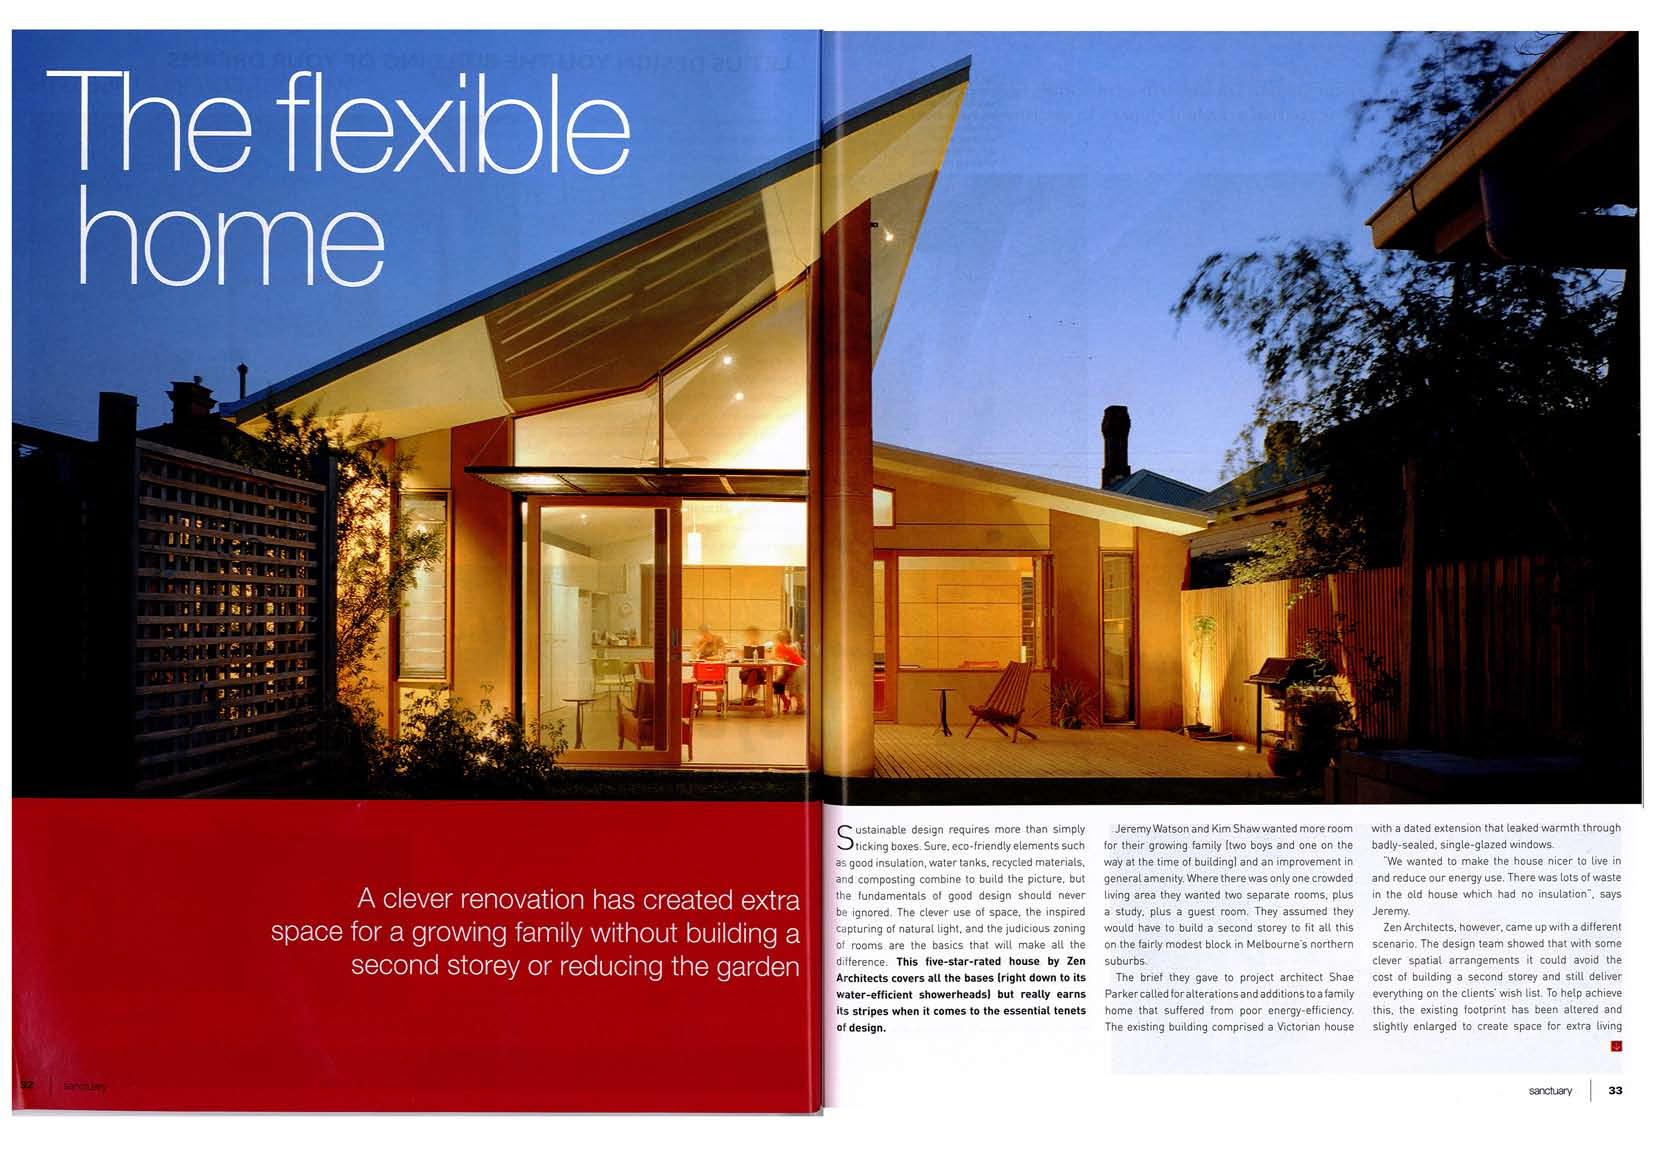 2007_Sanctuary Magazine_The Flexible Home__Page_2.jpg